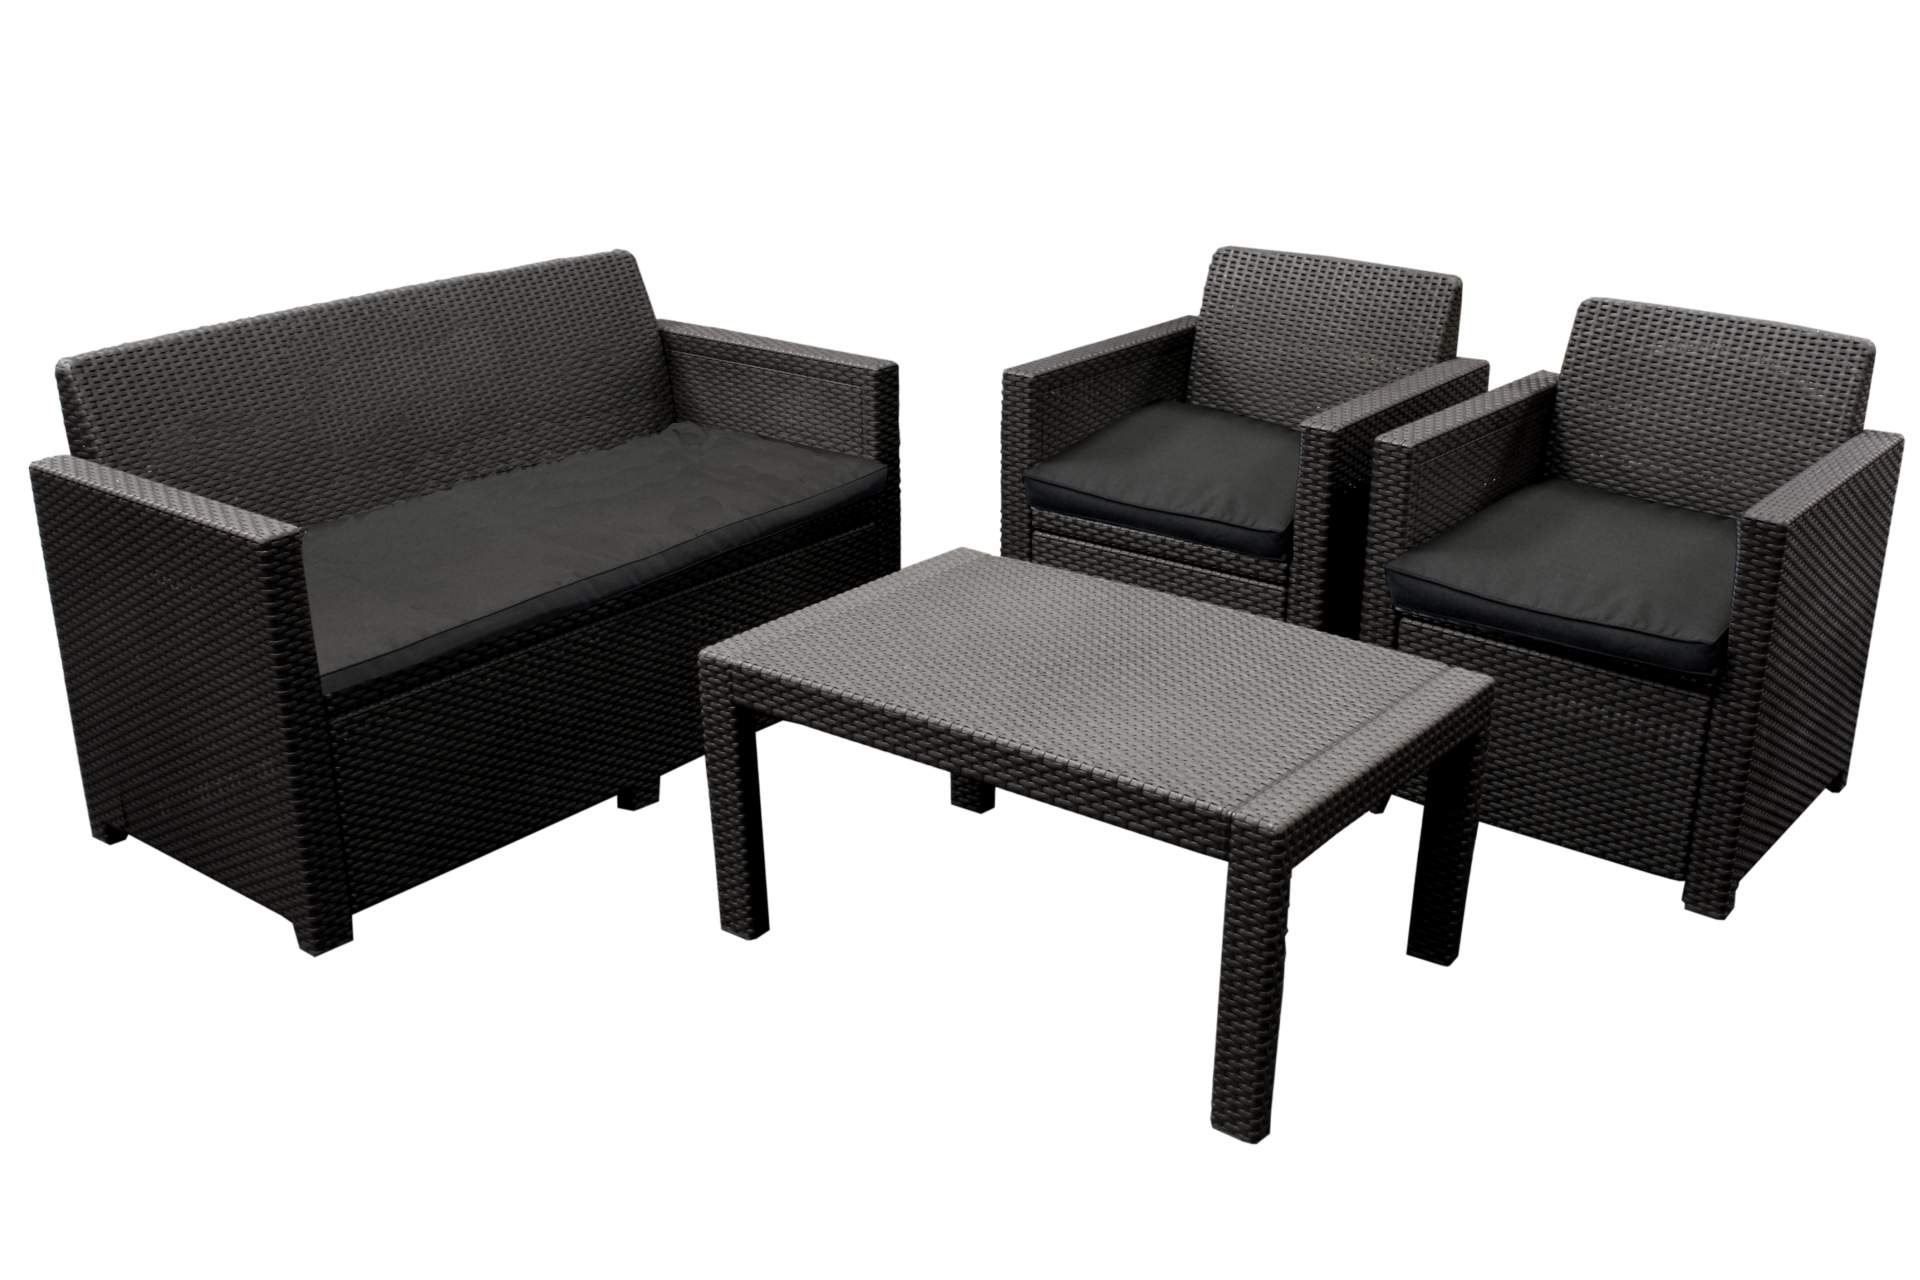 lounge sitzgruppe orlando allibert poly rattan anthrazit gartenm bel haus und garten. Black Bedroom Furniture Sets. Home Design Ideas